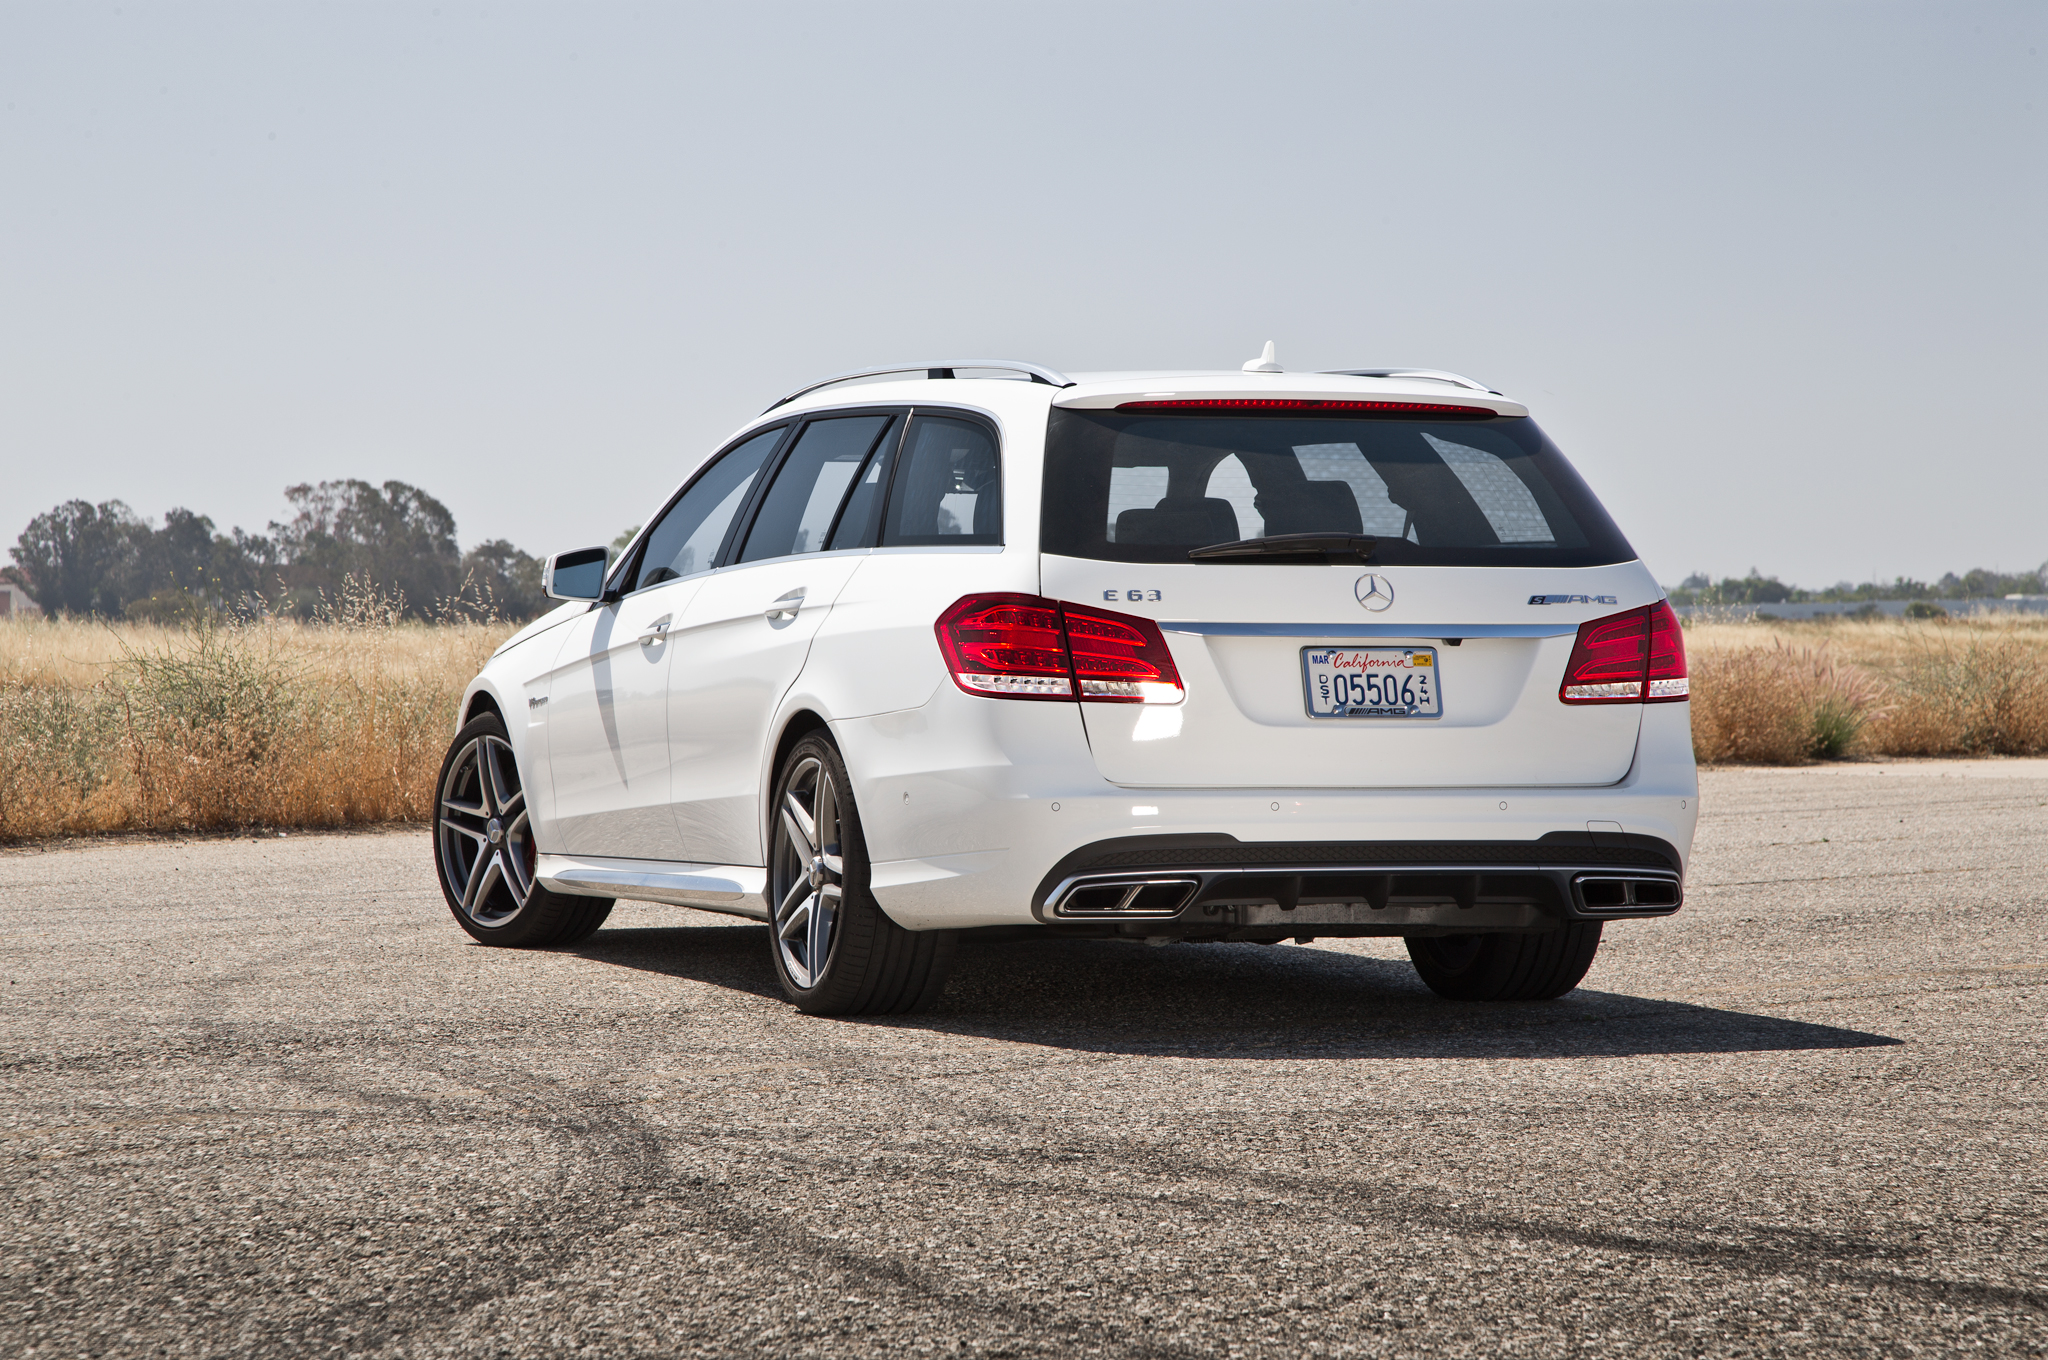 Mercedes E63 AMG Wagon: Faster Than a Speeding Bullet? Just About